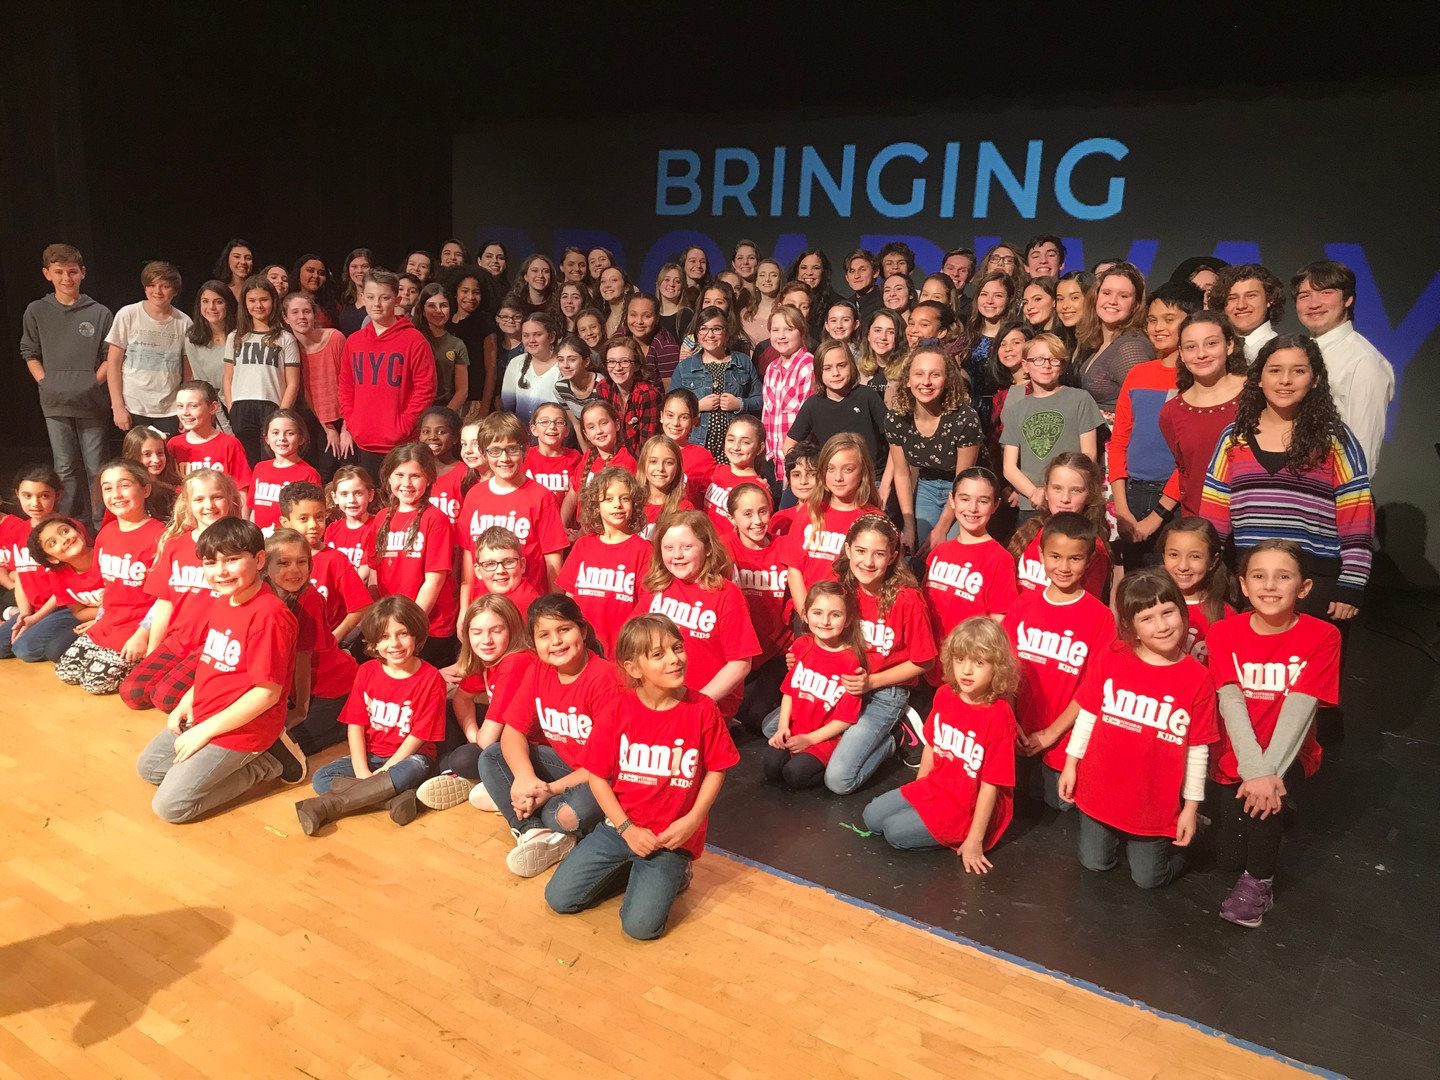 Lindsay Mendez and the kids of Beacon Performing Arts Center